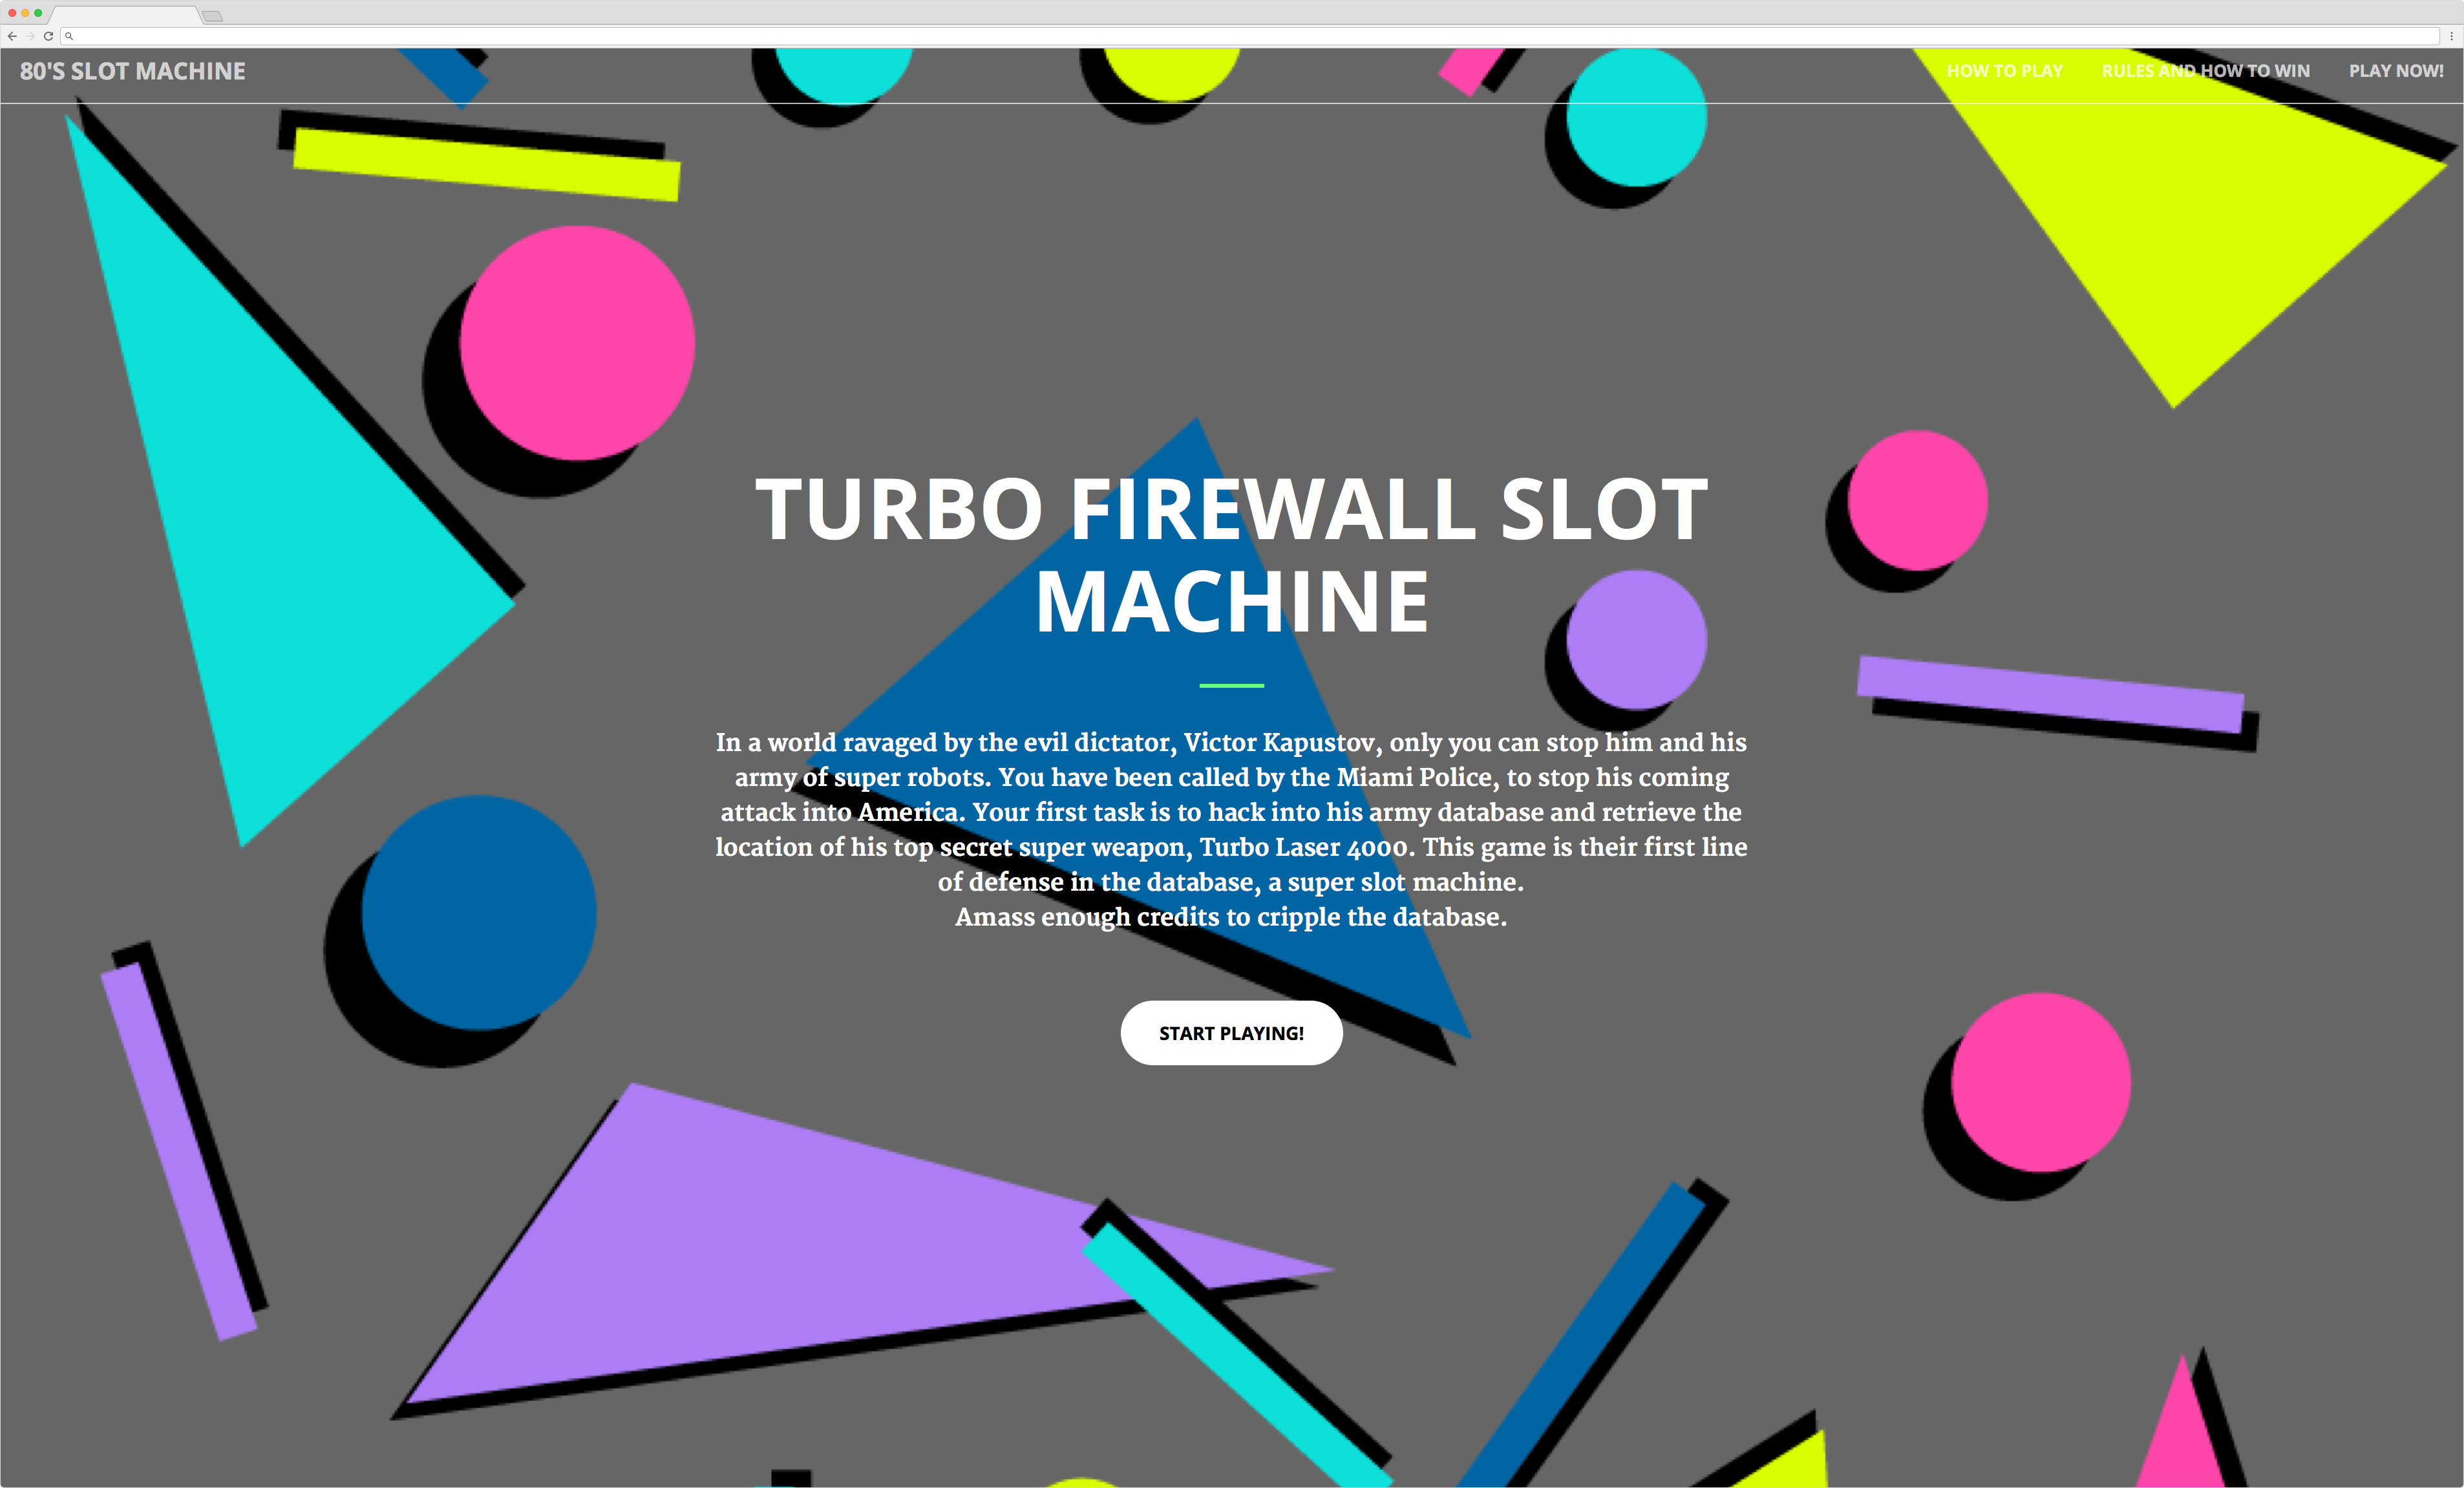 Front Page of Turbo Firewall Slot Machine